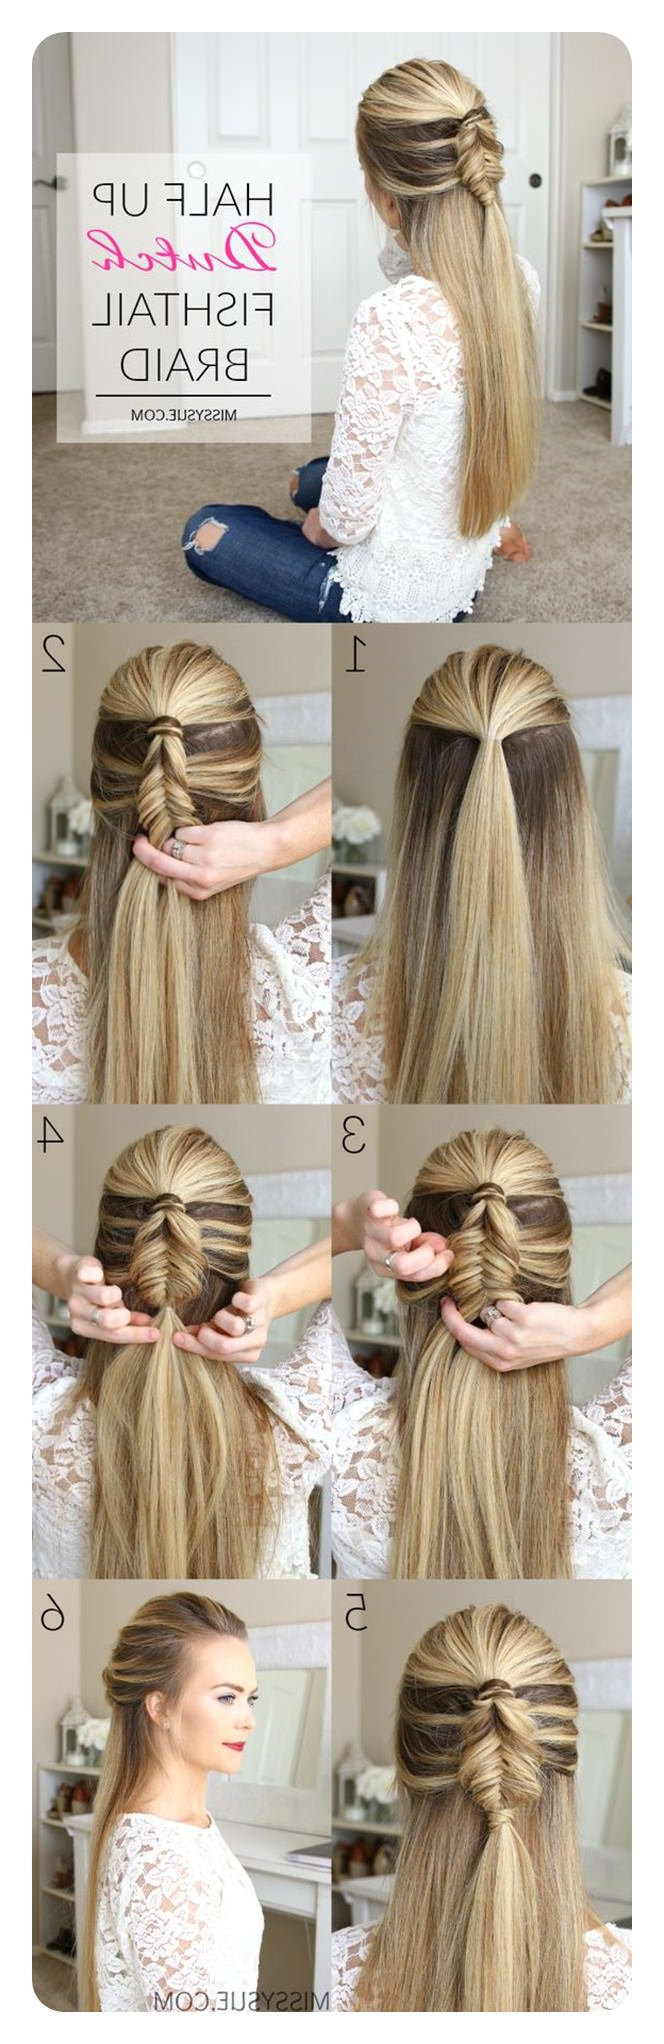 Newest Messy Mermaid Braid Hairstyles With 94 Incredible Fishtail Braid Ideas With Tutorials (View 15 of 20)